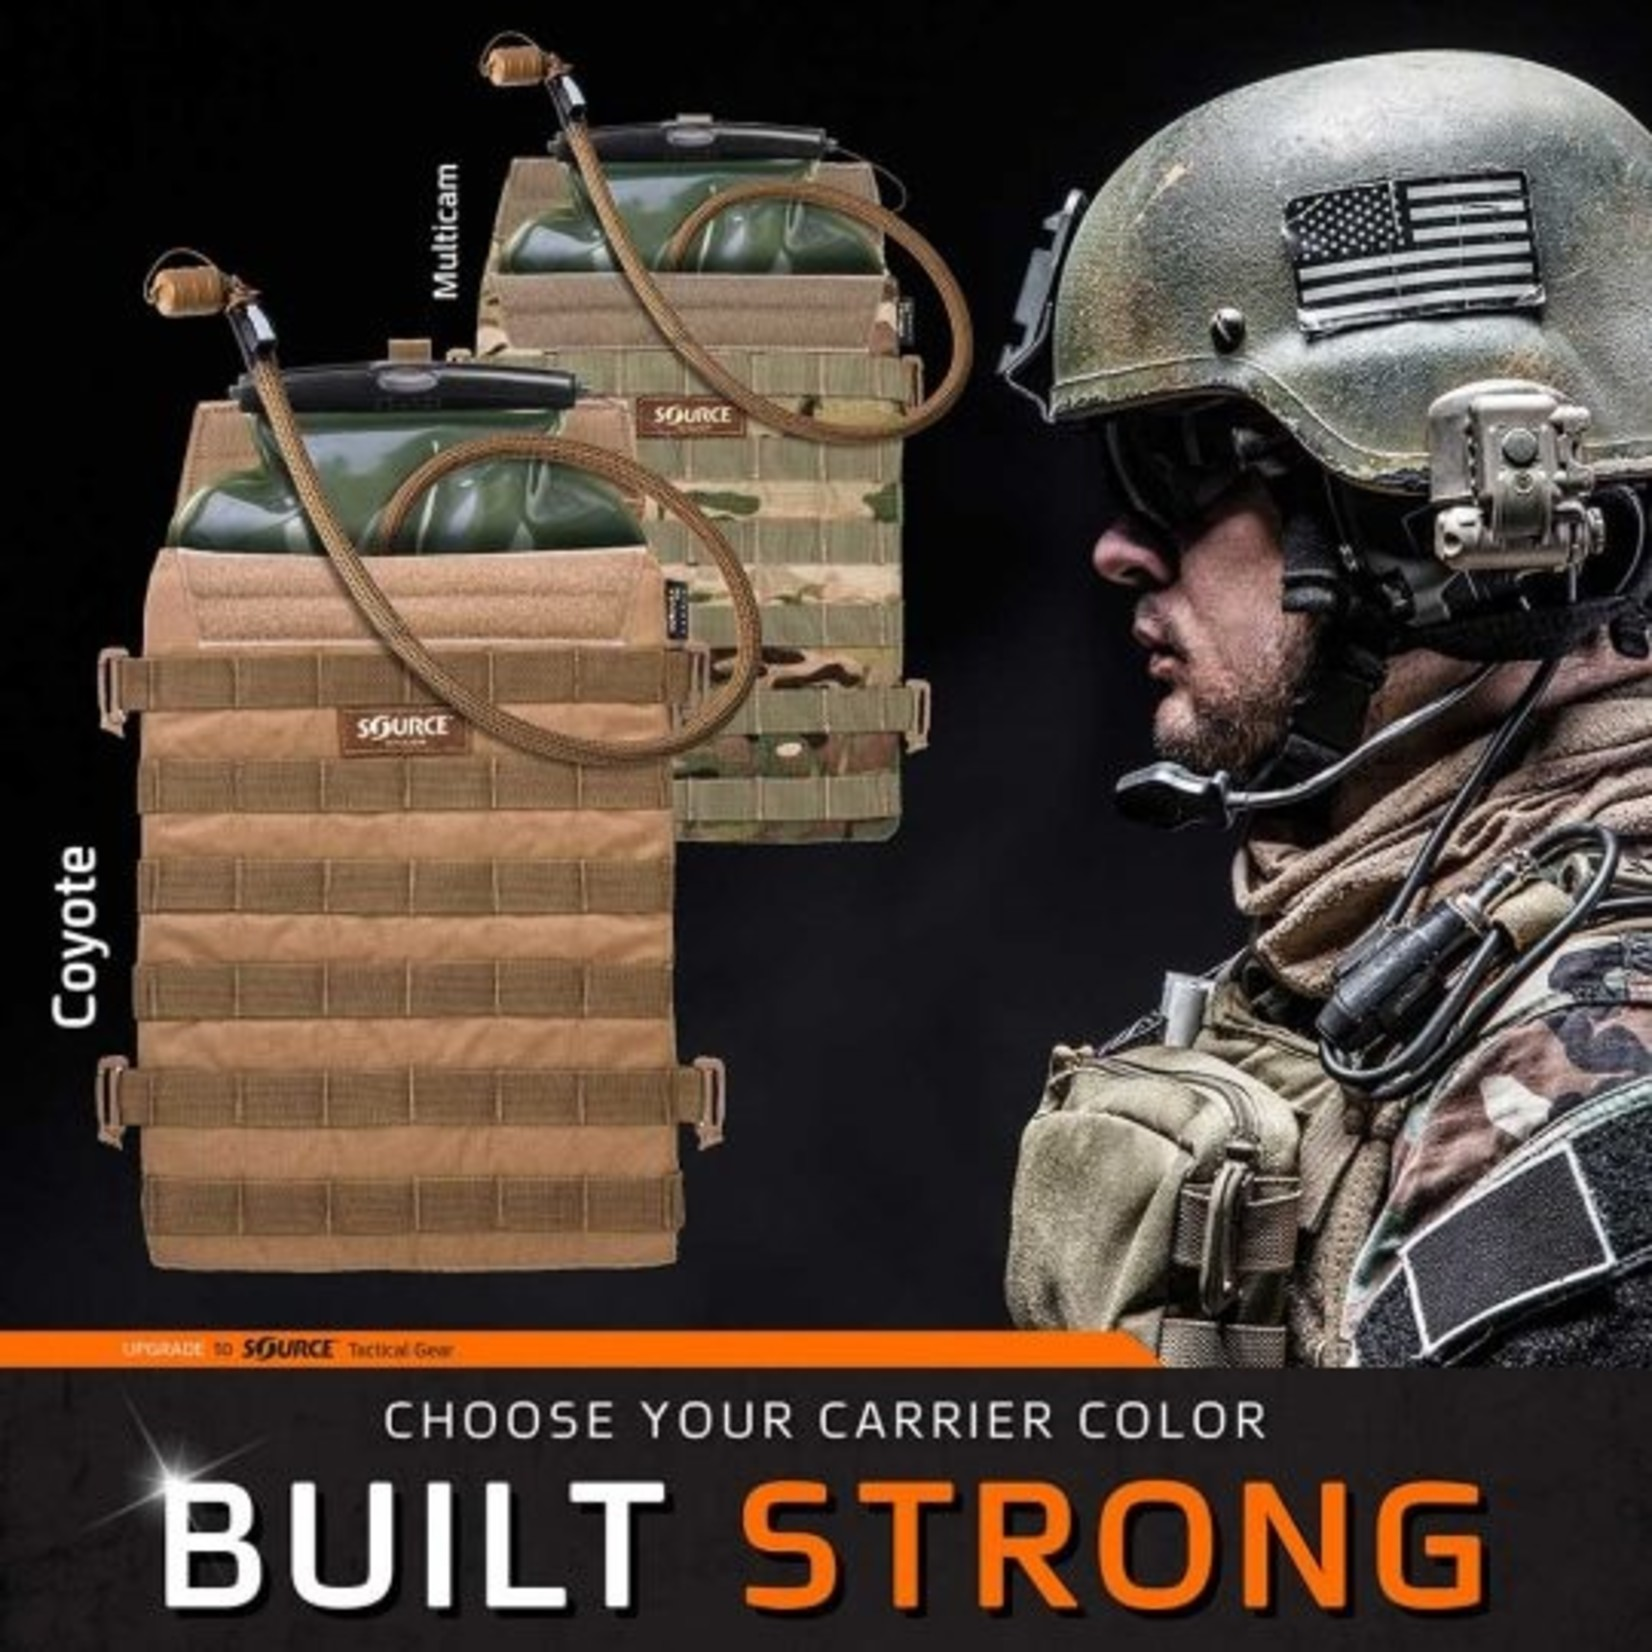 SOURCE TACTICAL GEAR RAZOR HYDRATION PACK